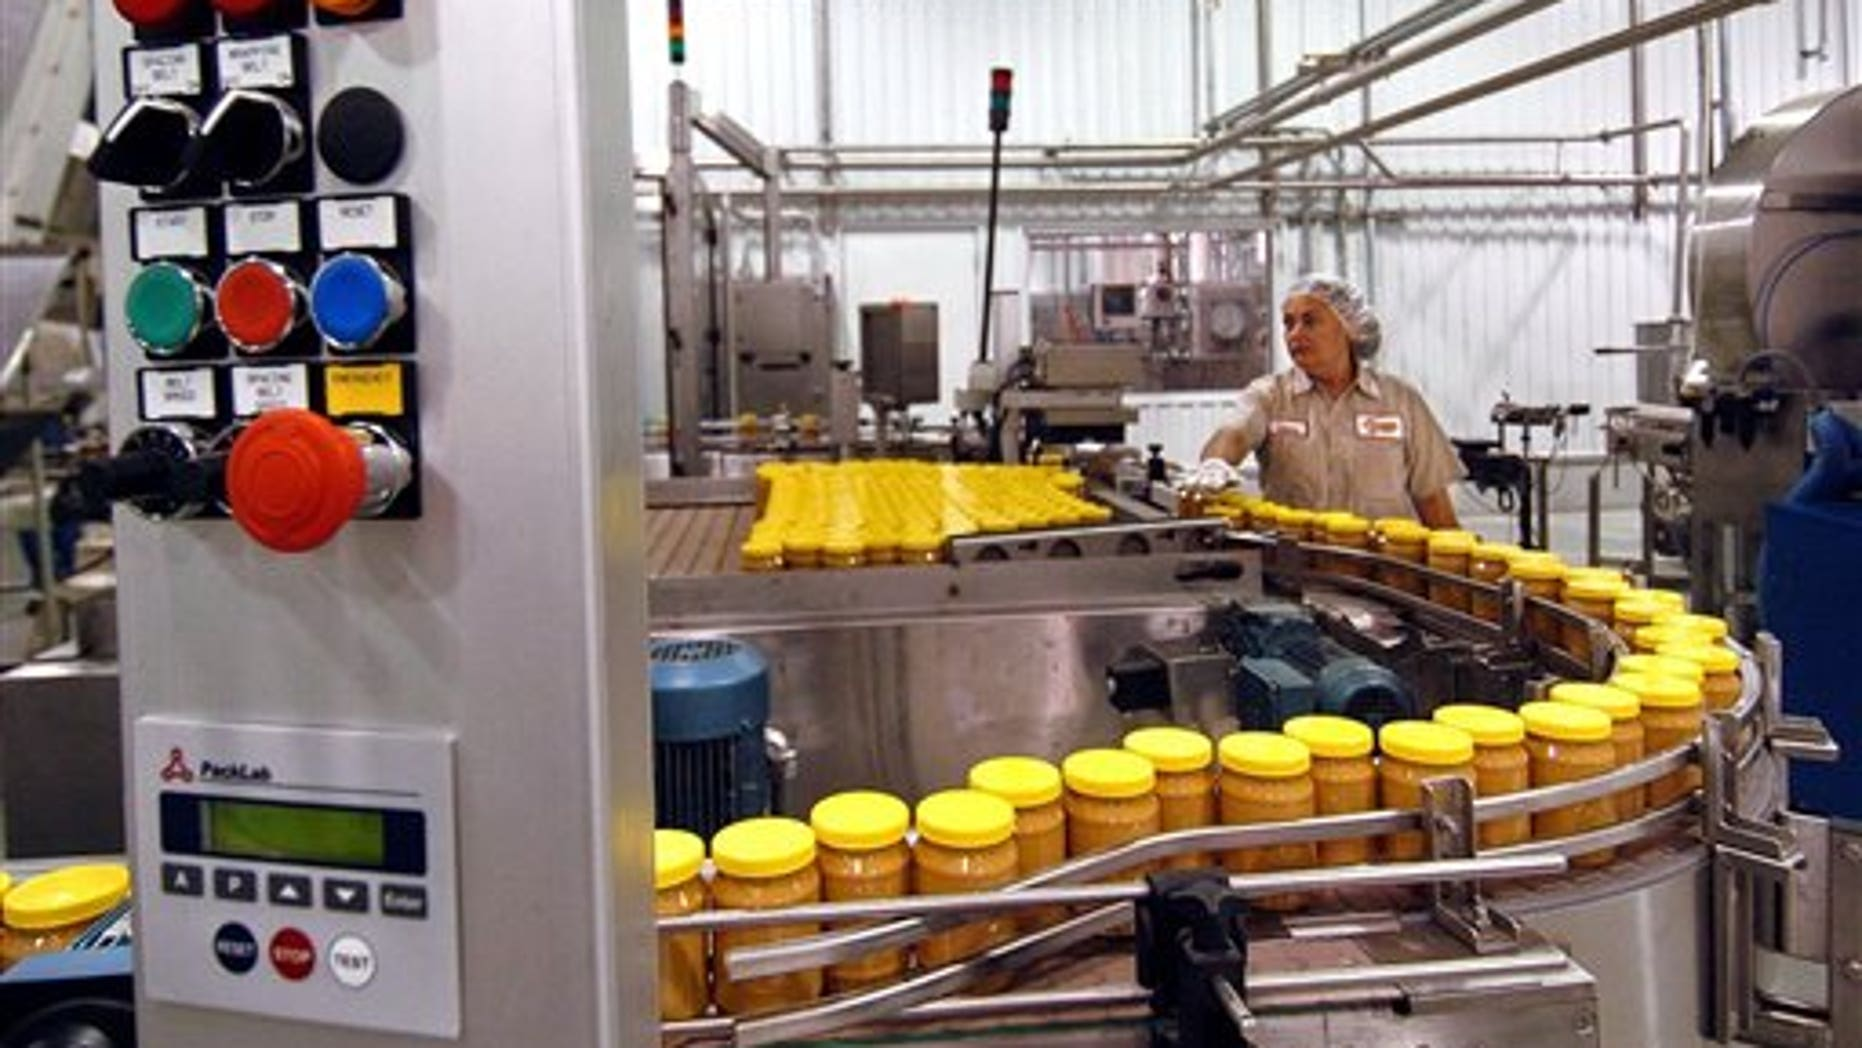 Sunland's largest organic peanut processing plant is located in the small town of Portales, New Mexico.